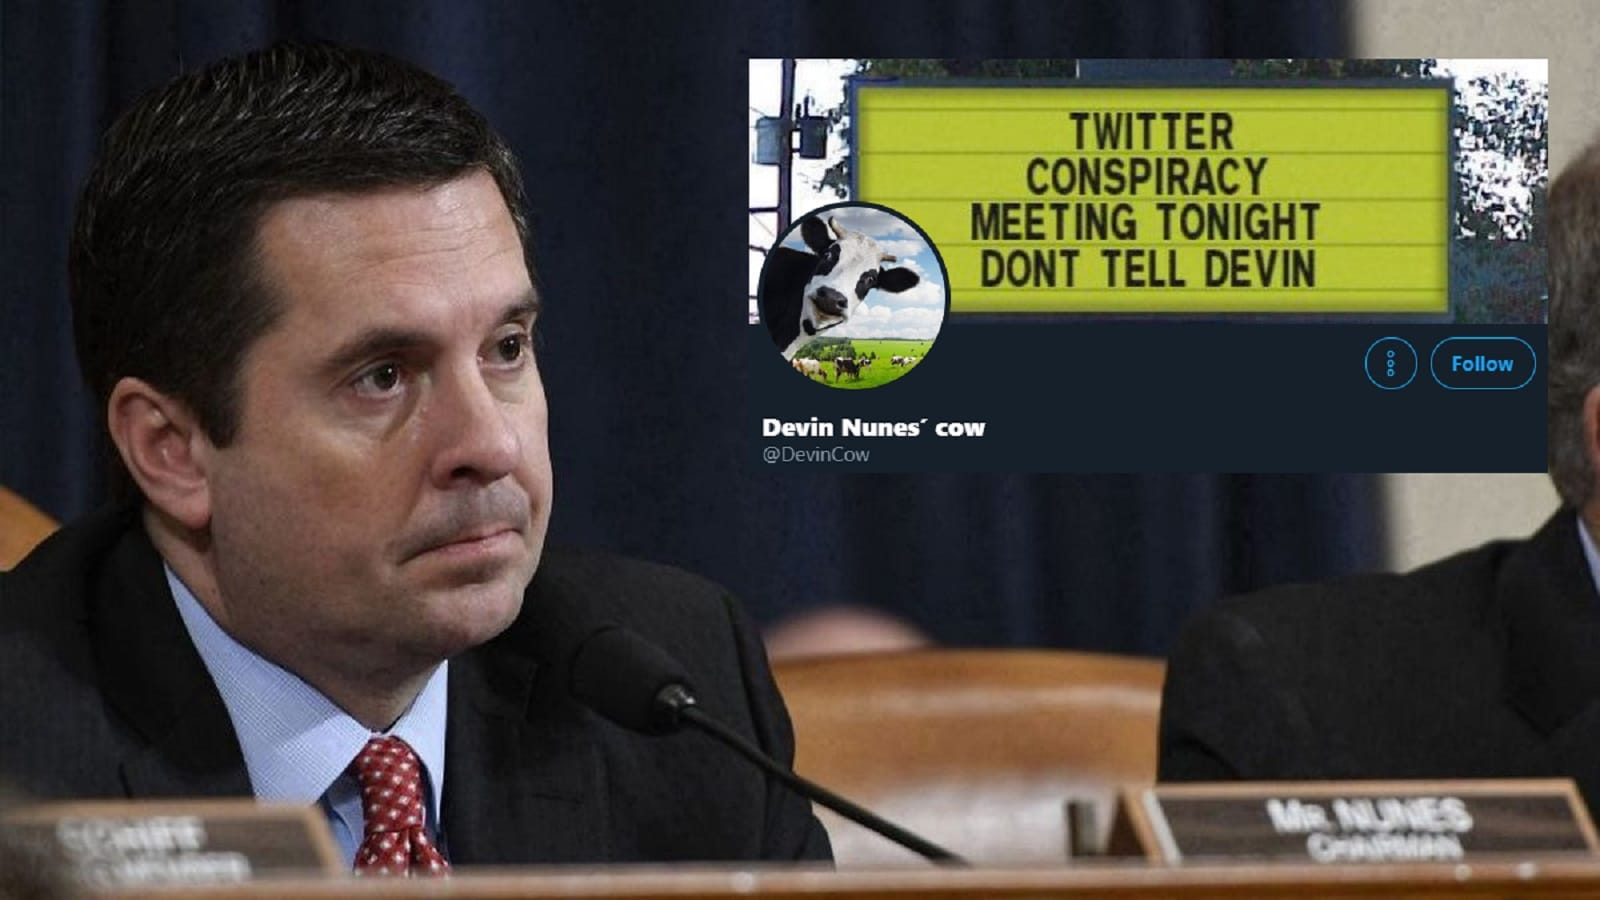 devin nunes looking at one of his parody twitter accounts